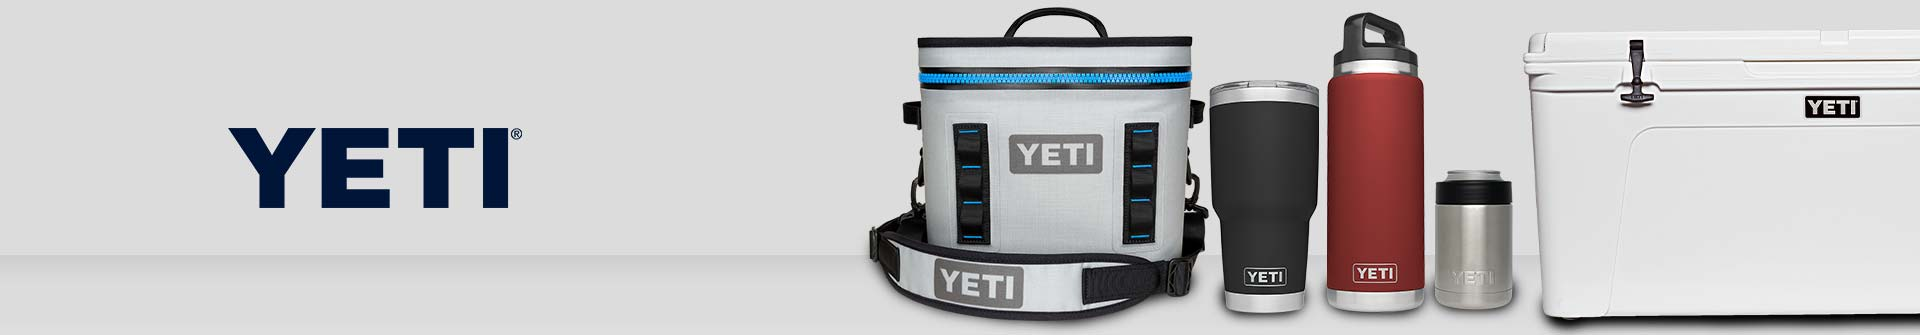 Shop our selection of YETI Premium Coolers & Drinkware available for sale today at your local Source For Sports near you.